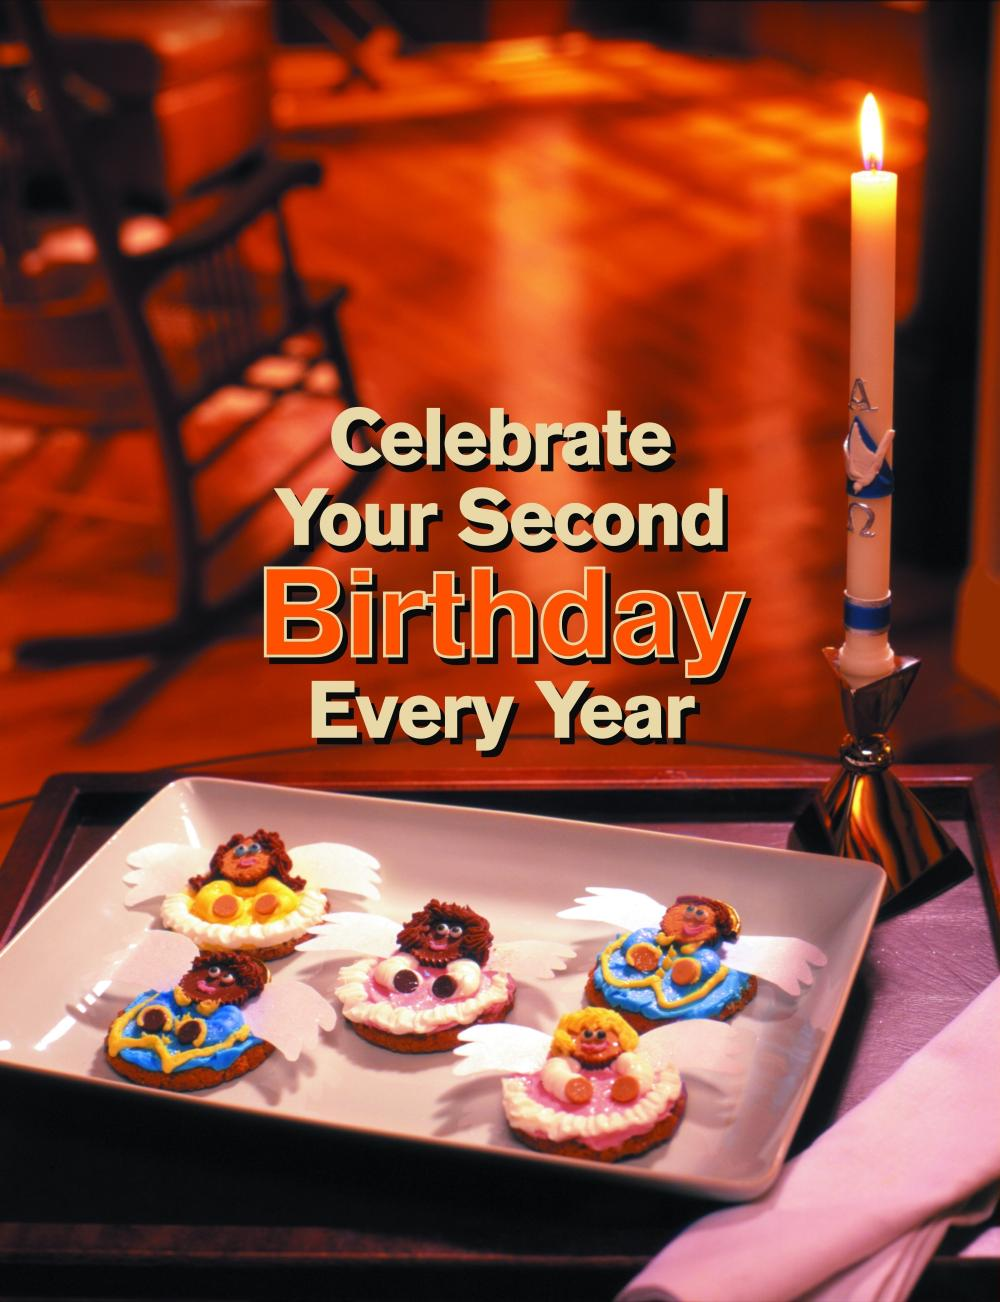 Celebrate your second birthday every year